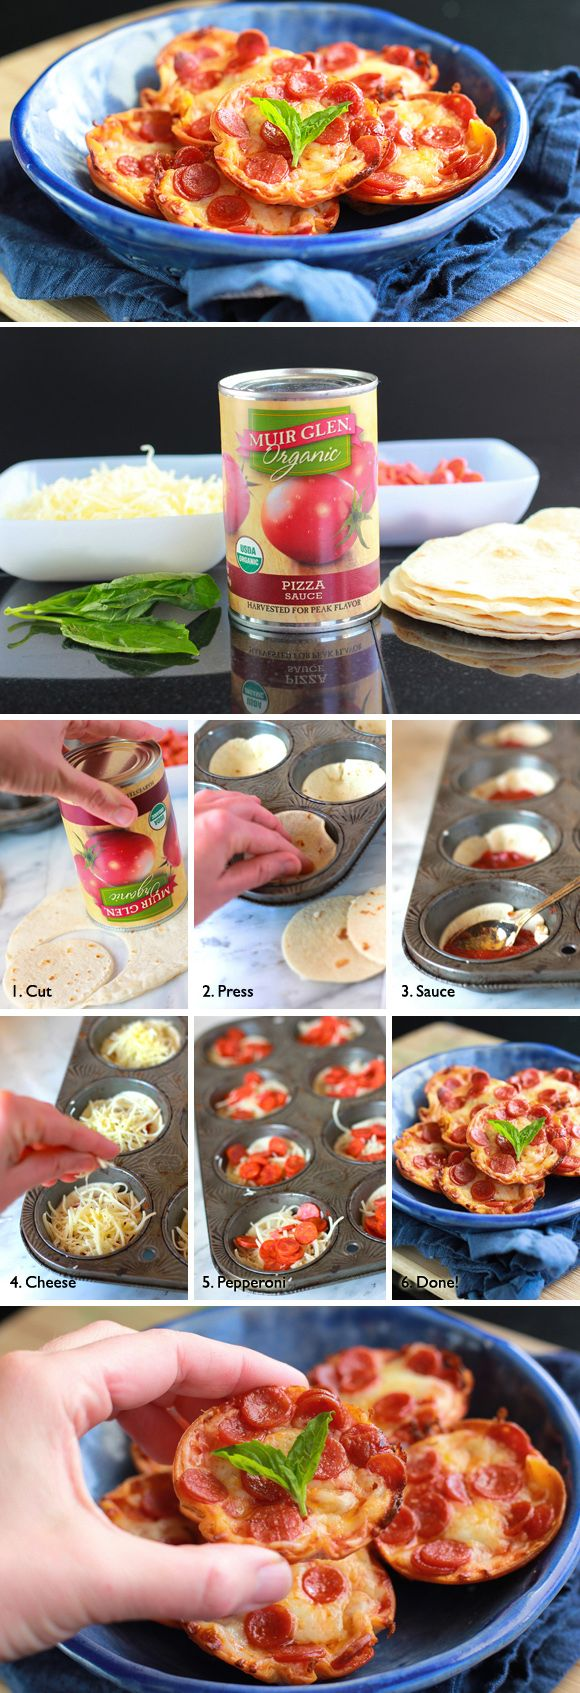 Mini pizzas crujientes de pepperoni / http://www.tablespoon.com/the-bloggers/cheekykitchen                                                                                                                                                                                 Más